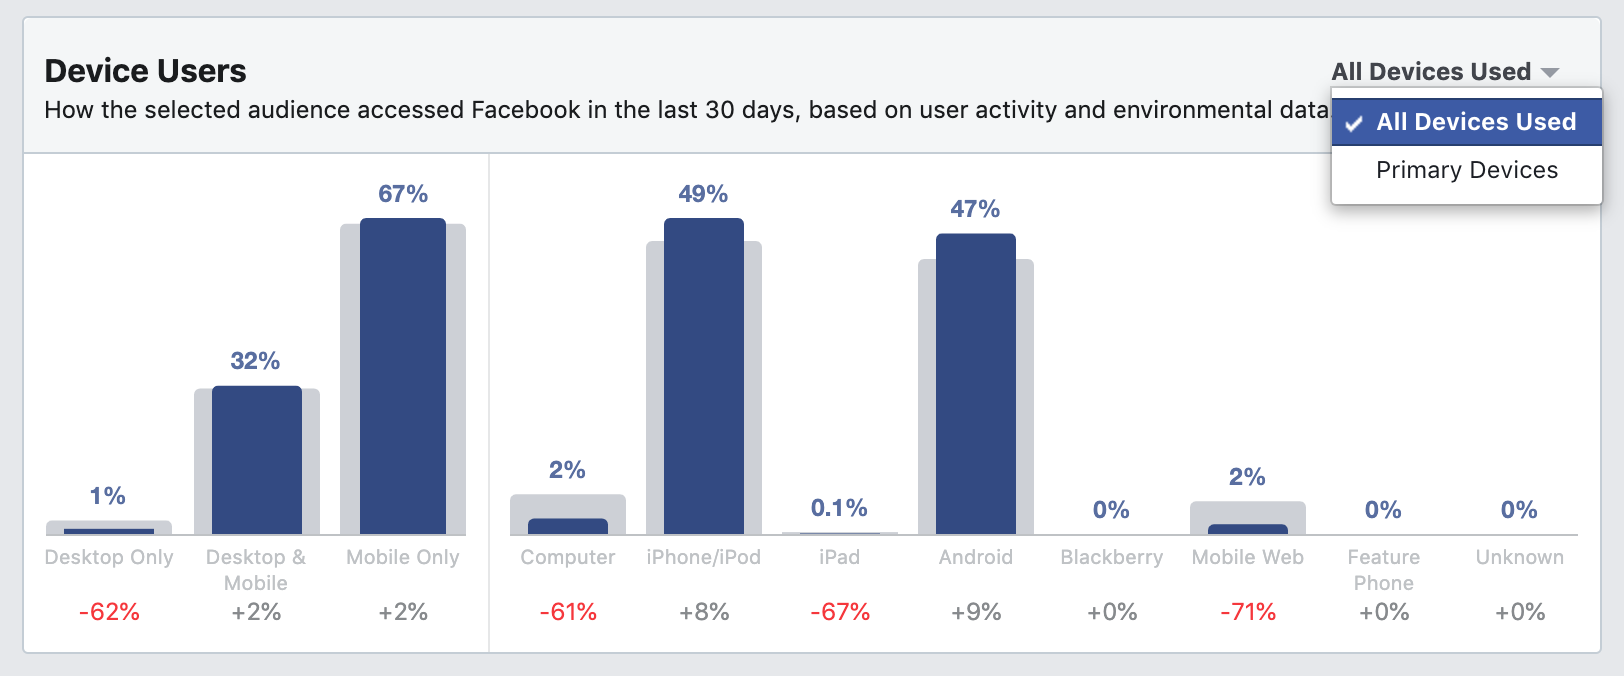 Device Users use to access Facebook in Audience Insights